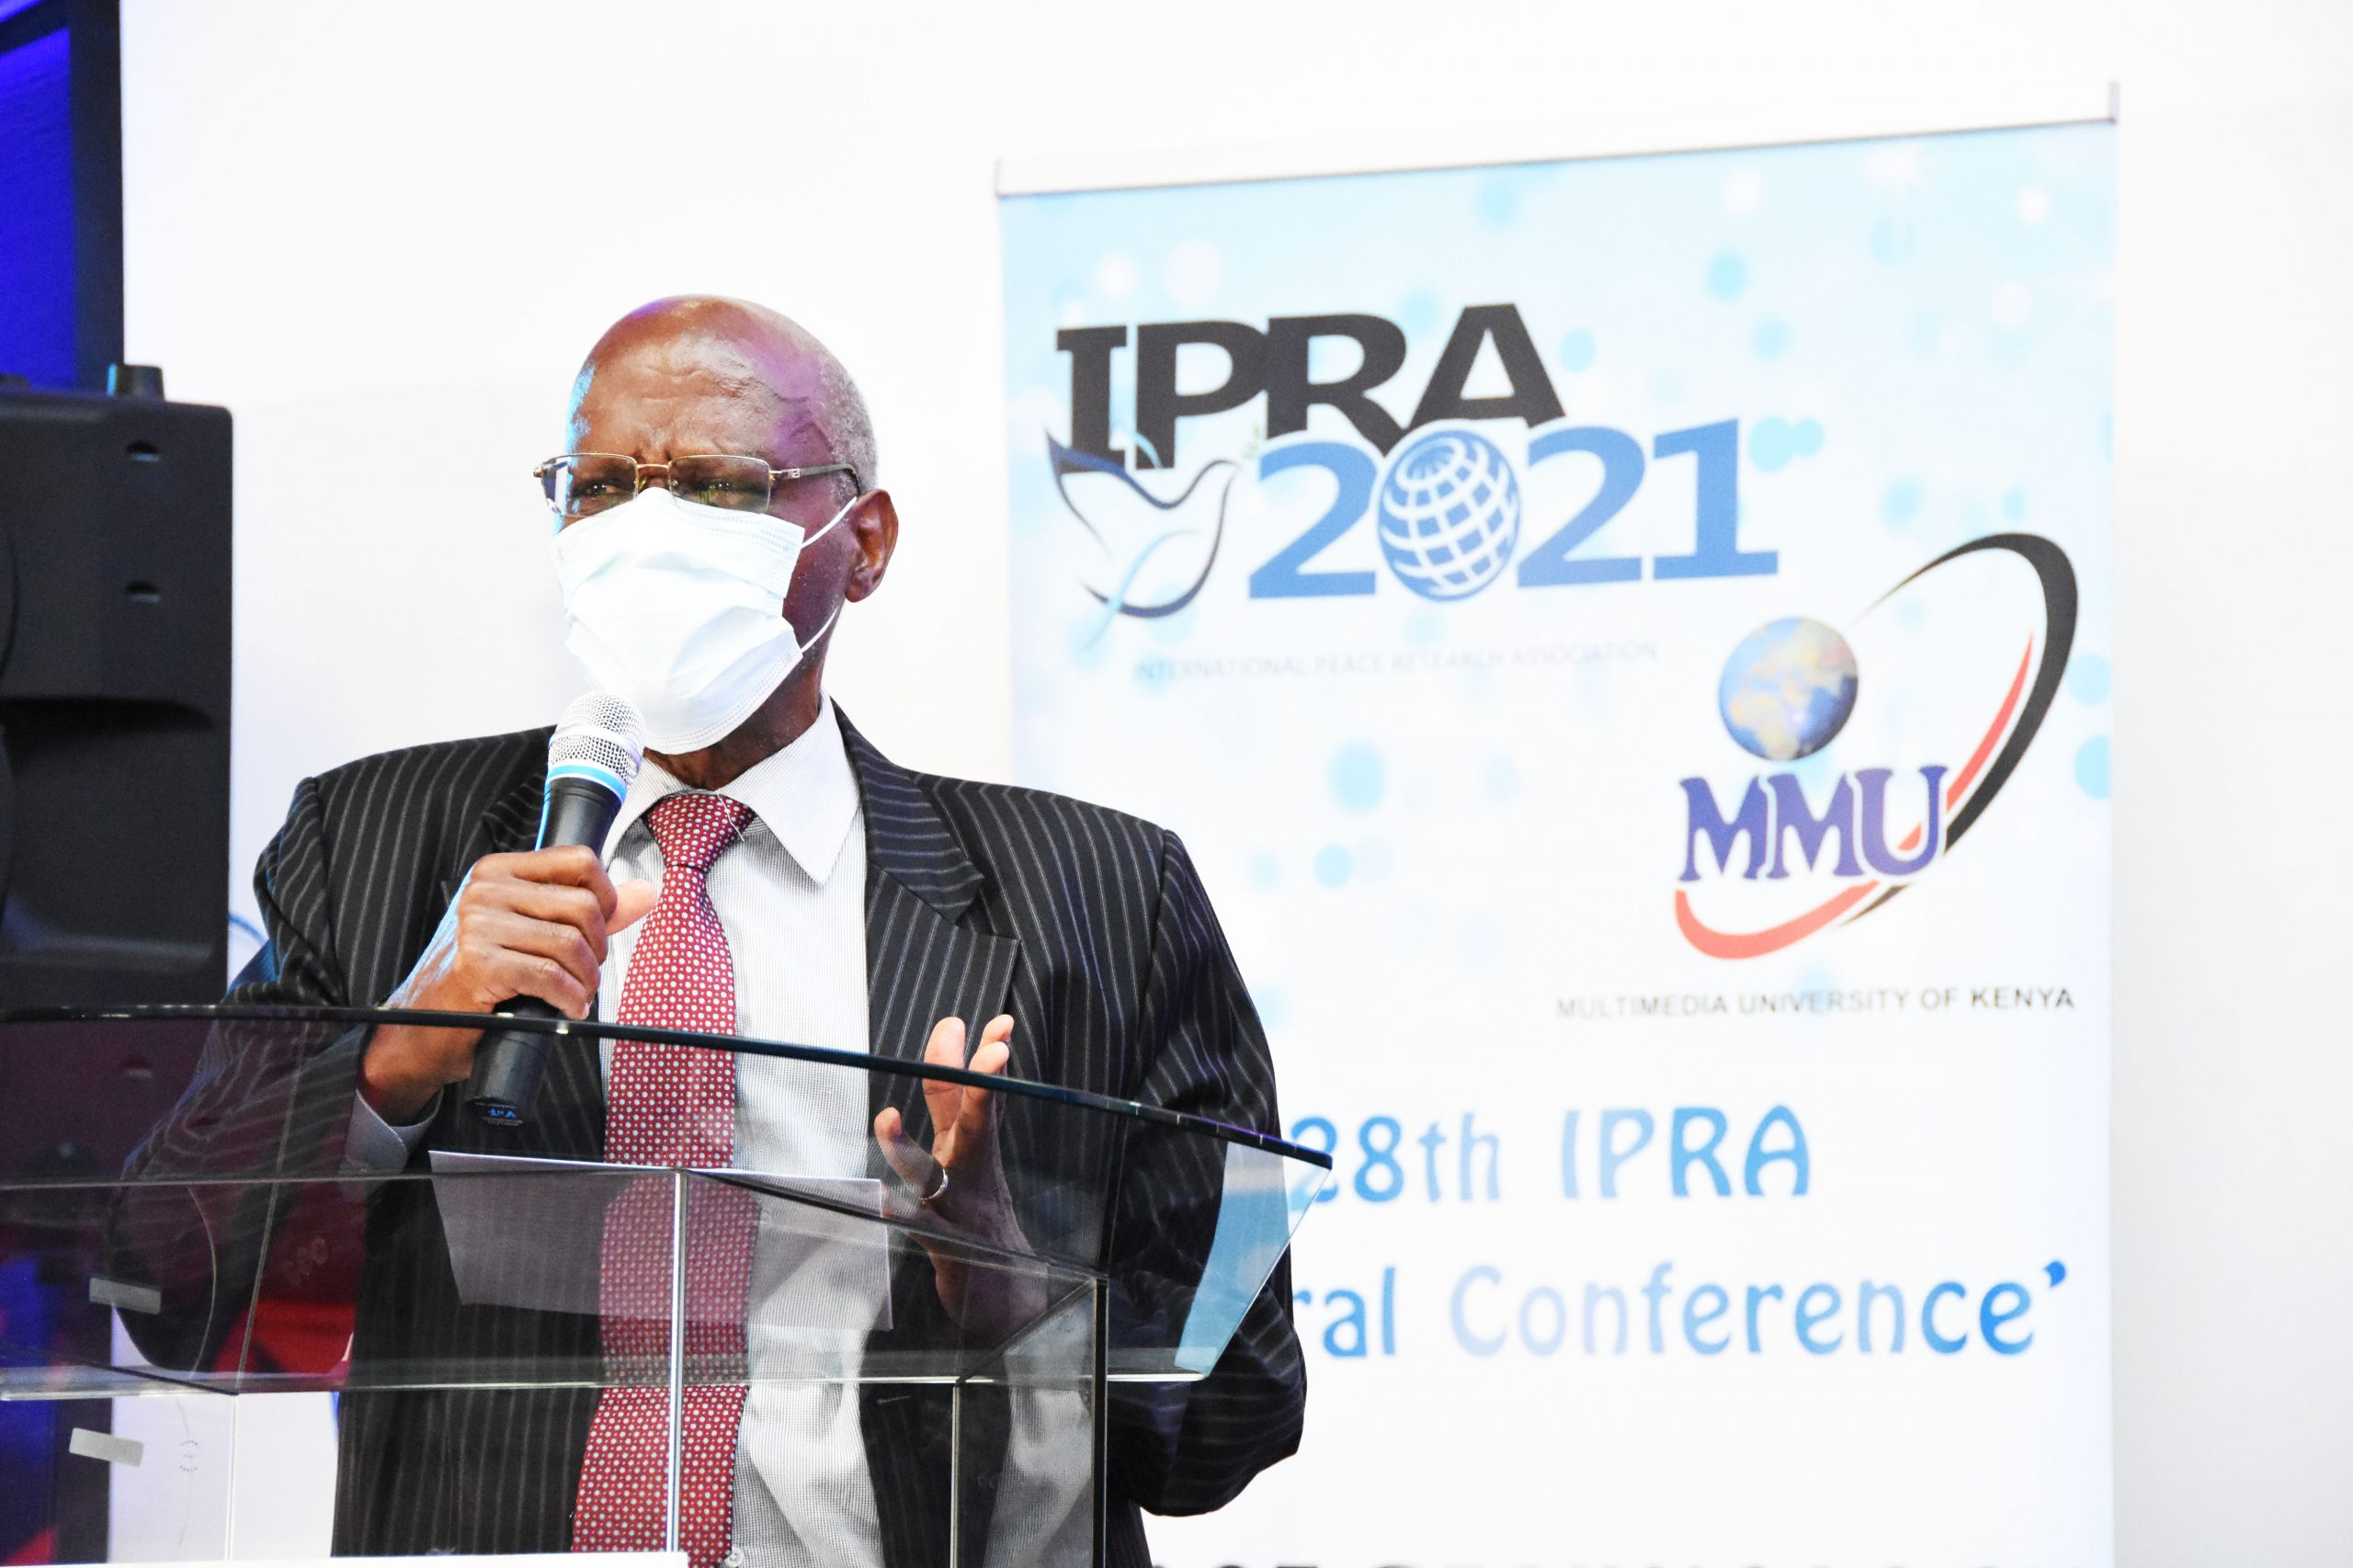 We must use technology to attain global peace goal – says Prof. Mbatia